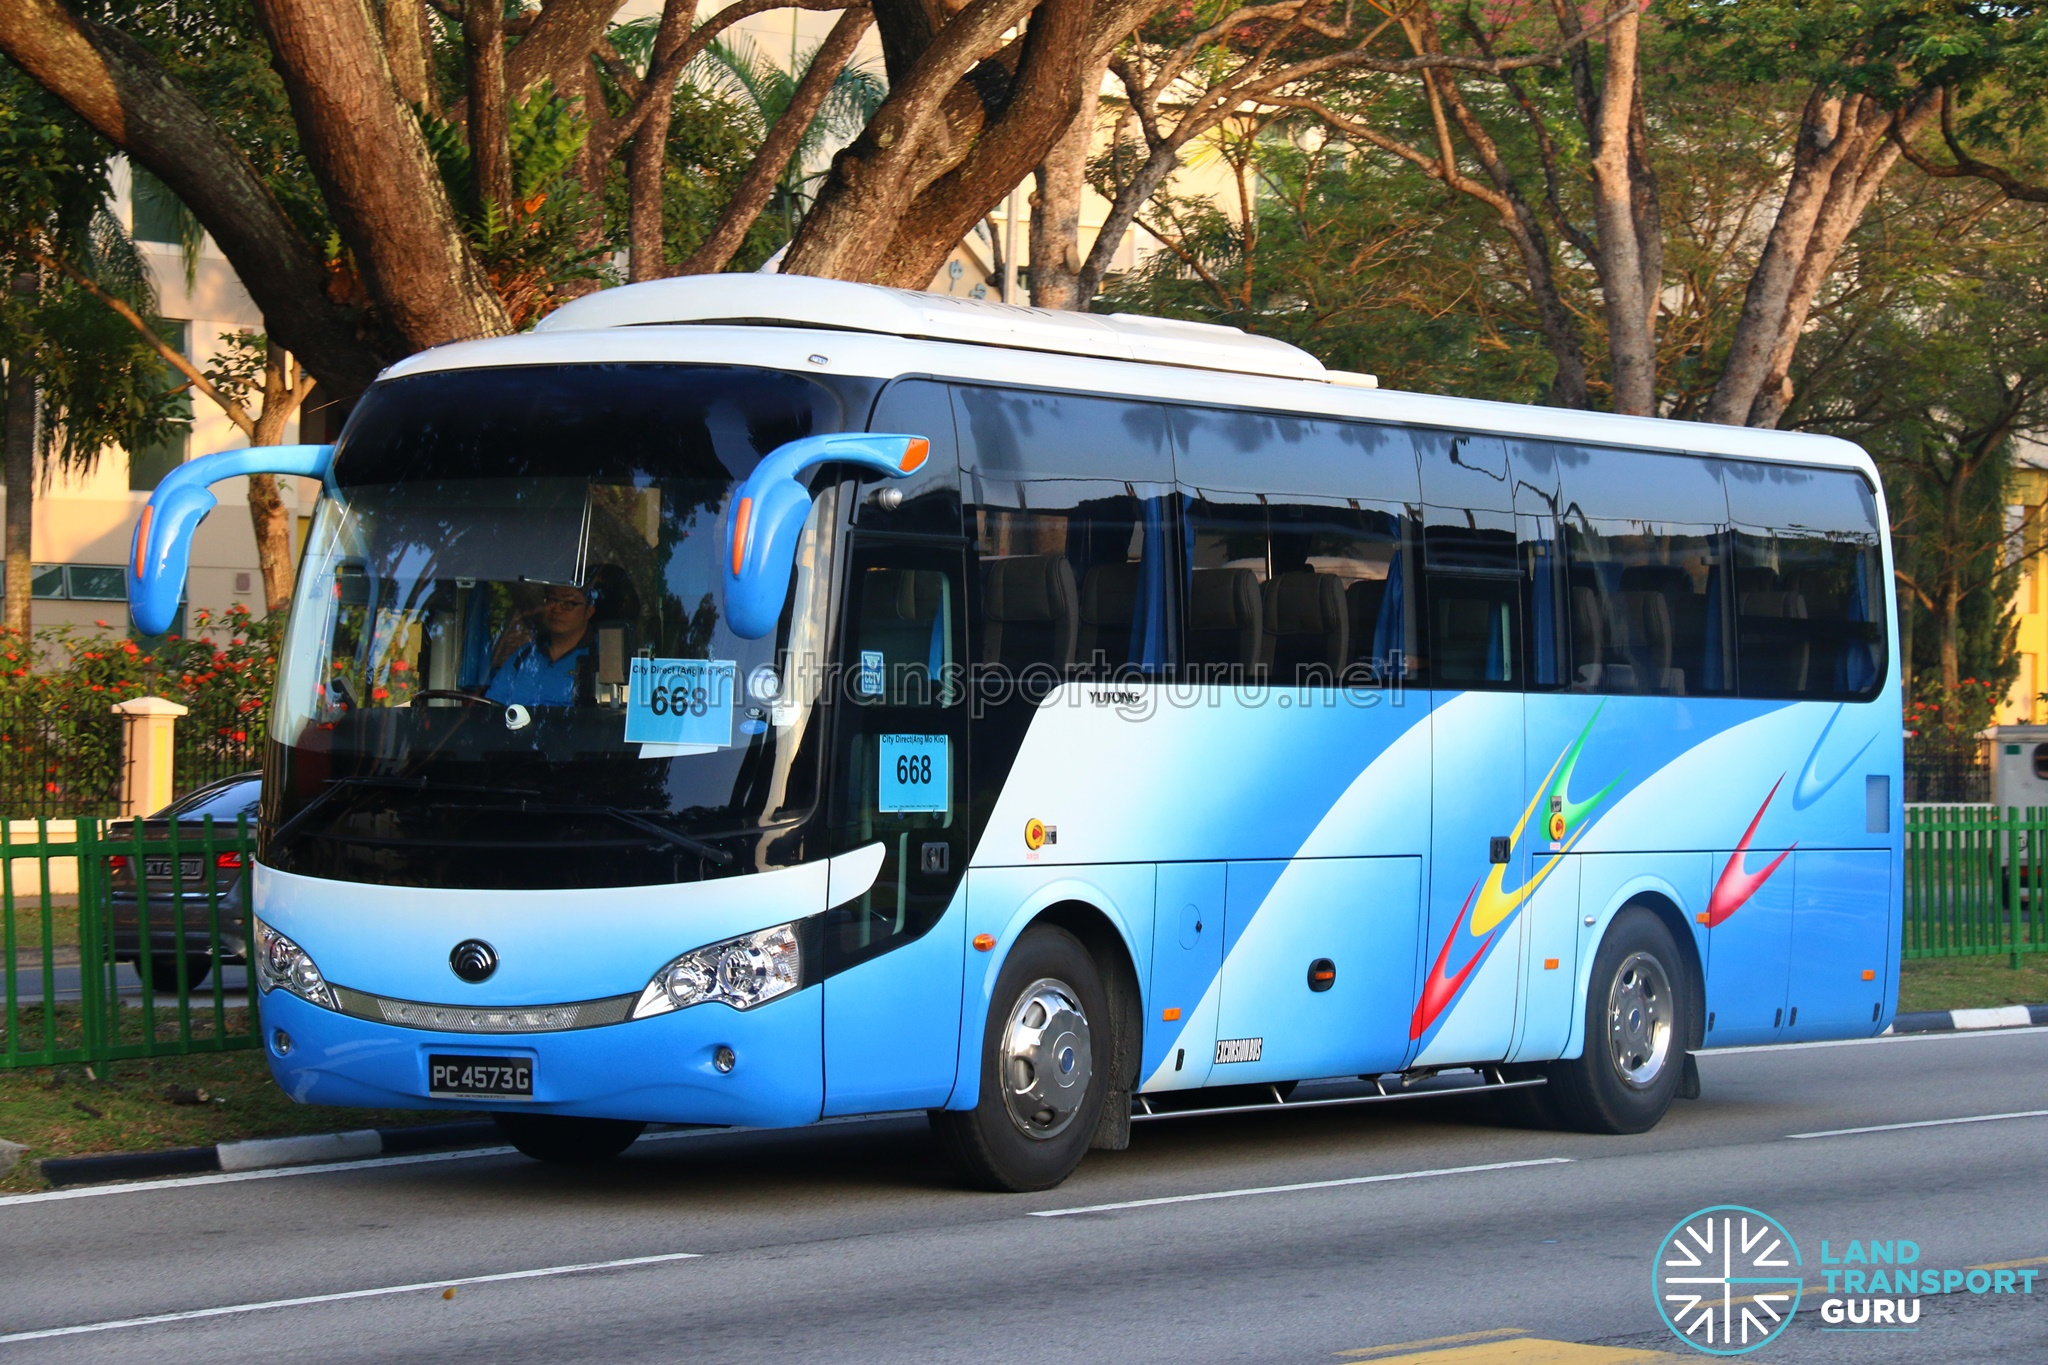 City Direct Bus Service 668 | Land Transport Guru